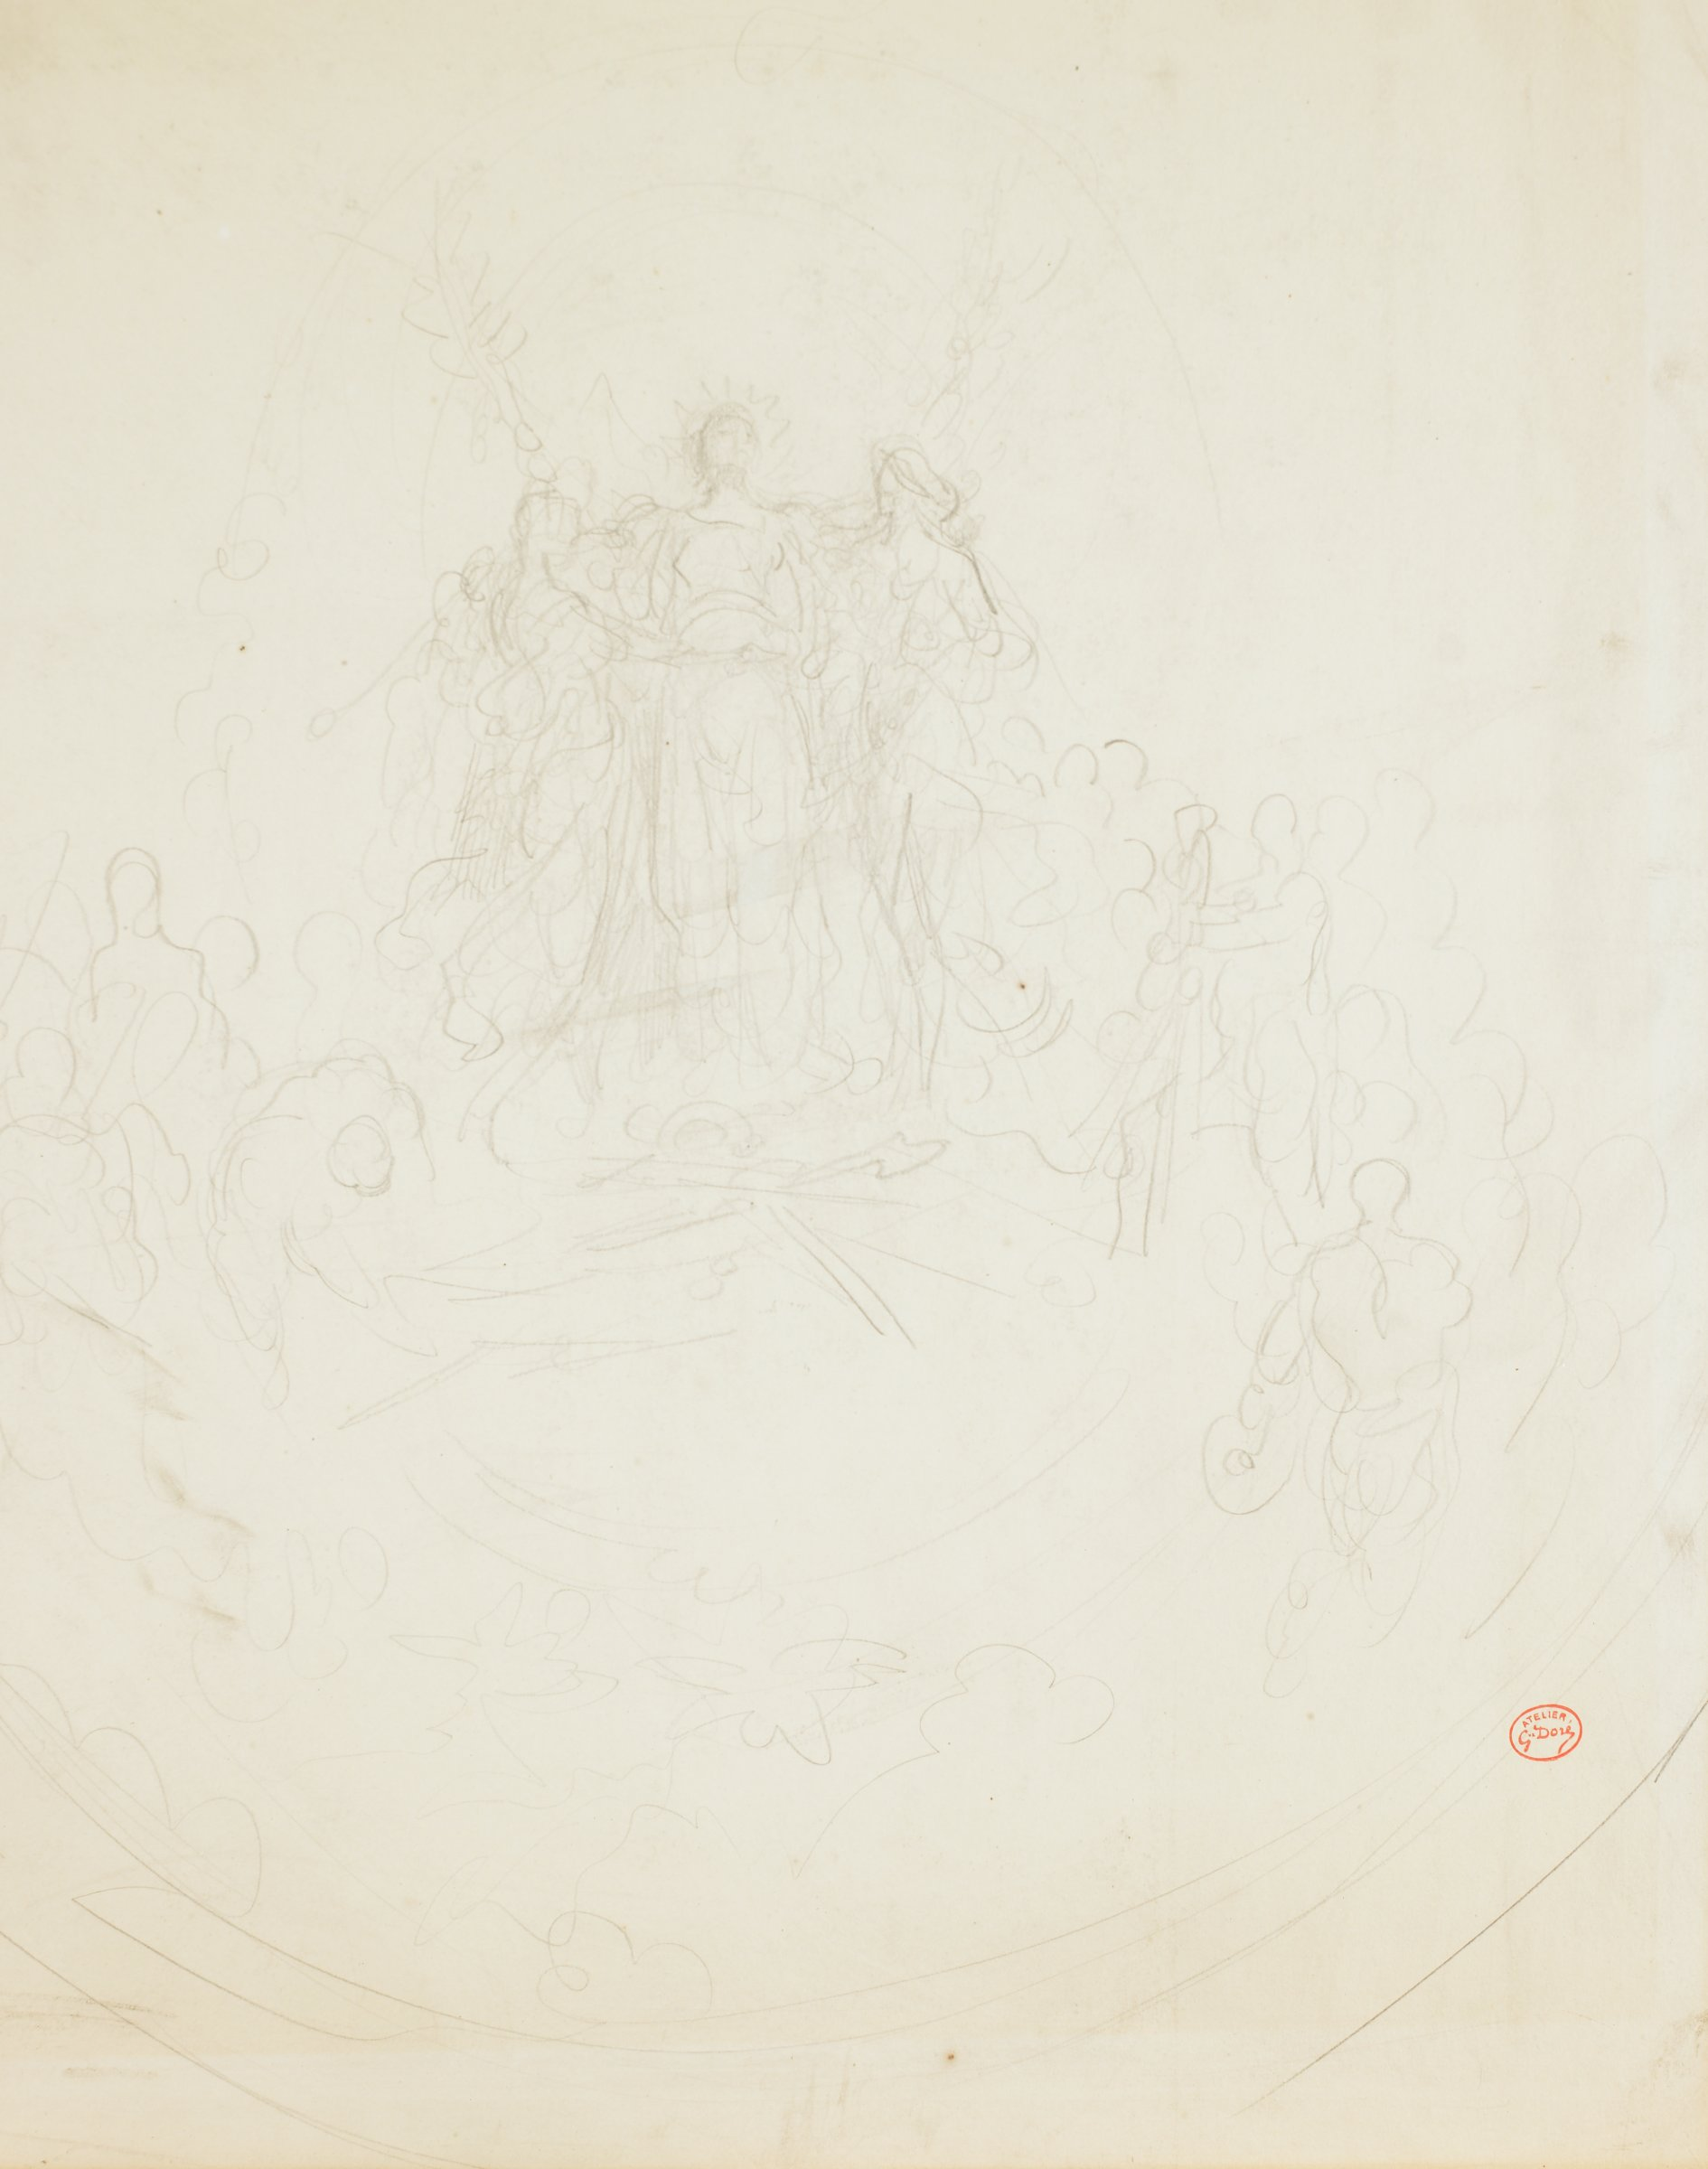 A figure stands at the center facing forward. Figures flank him on either side. A crowd of other figures drawn in outline populate the sides of the composition.